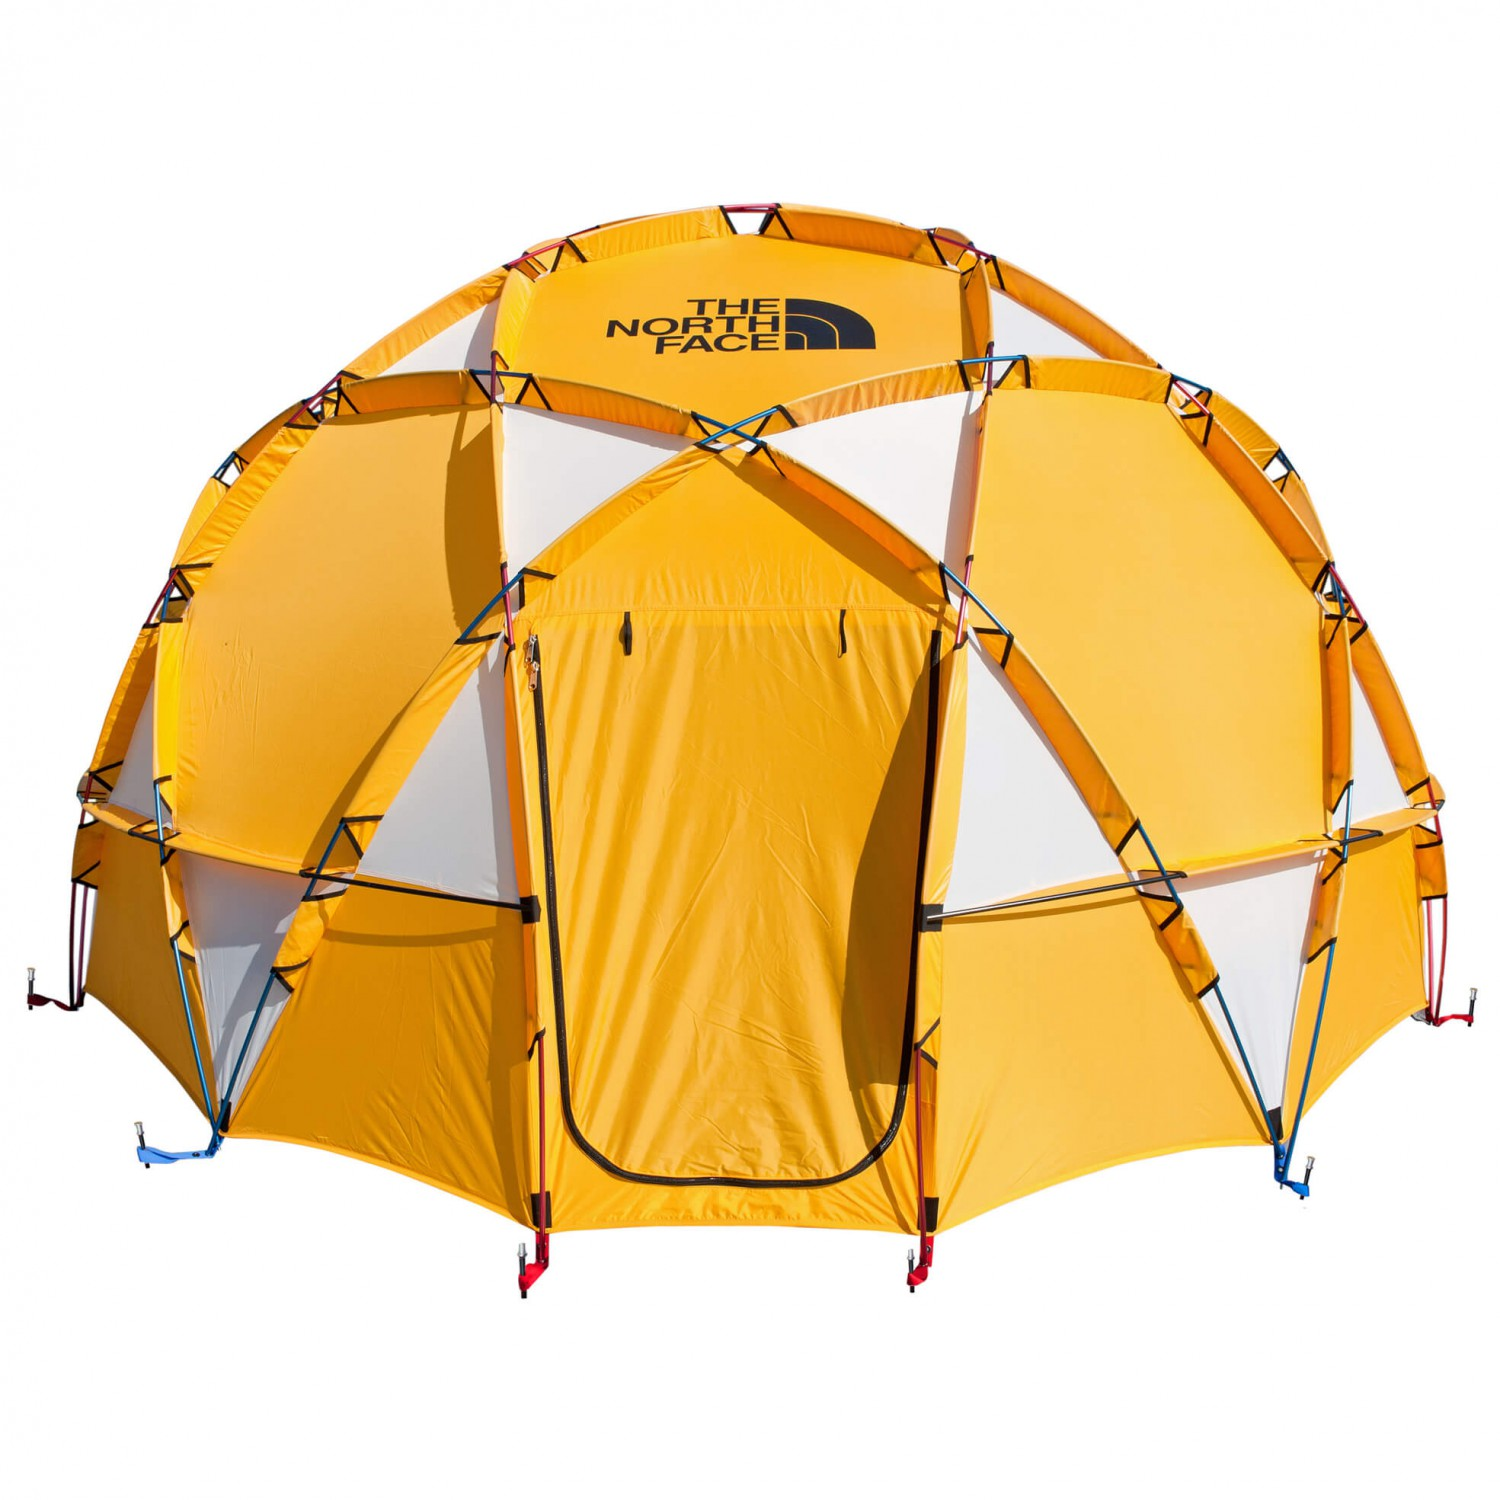 e9b75abc8 The North Face - 2-Meter Dome - Group tent - Gold / White / Black